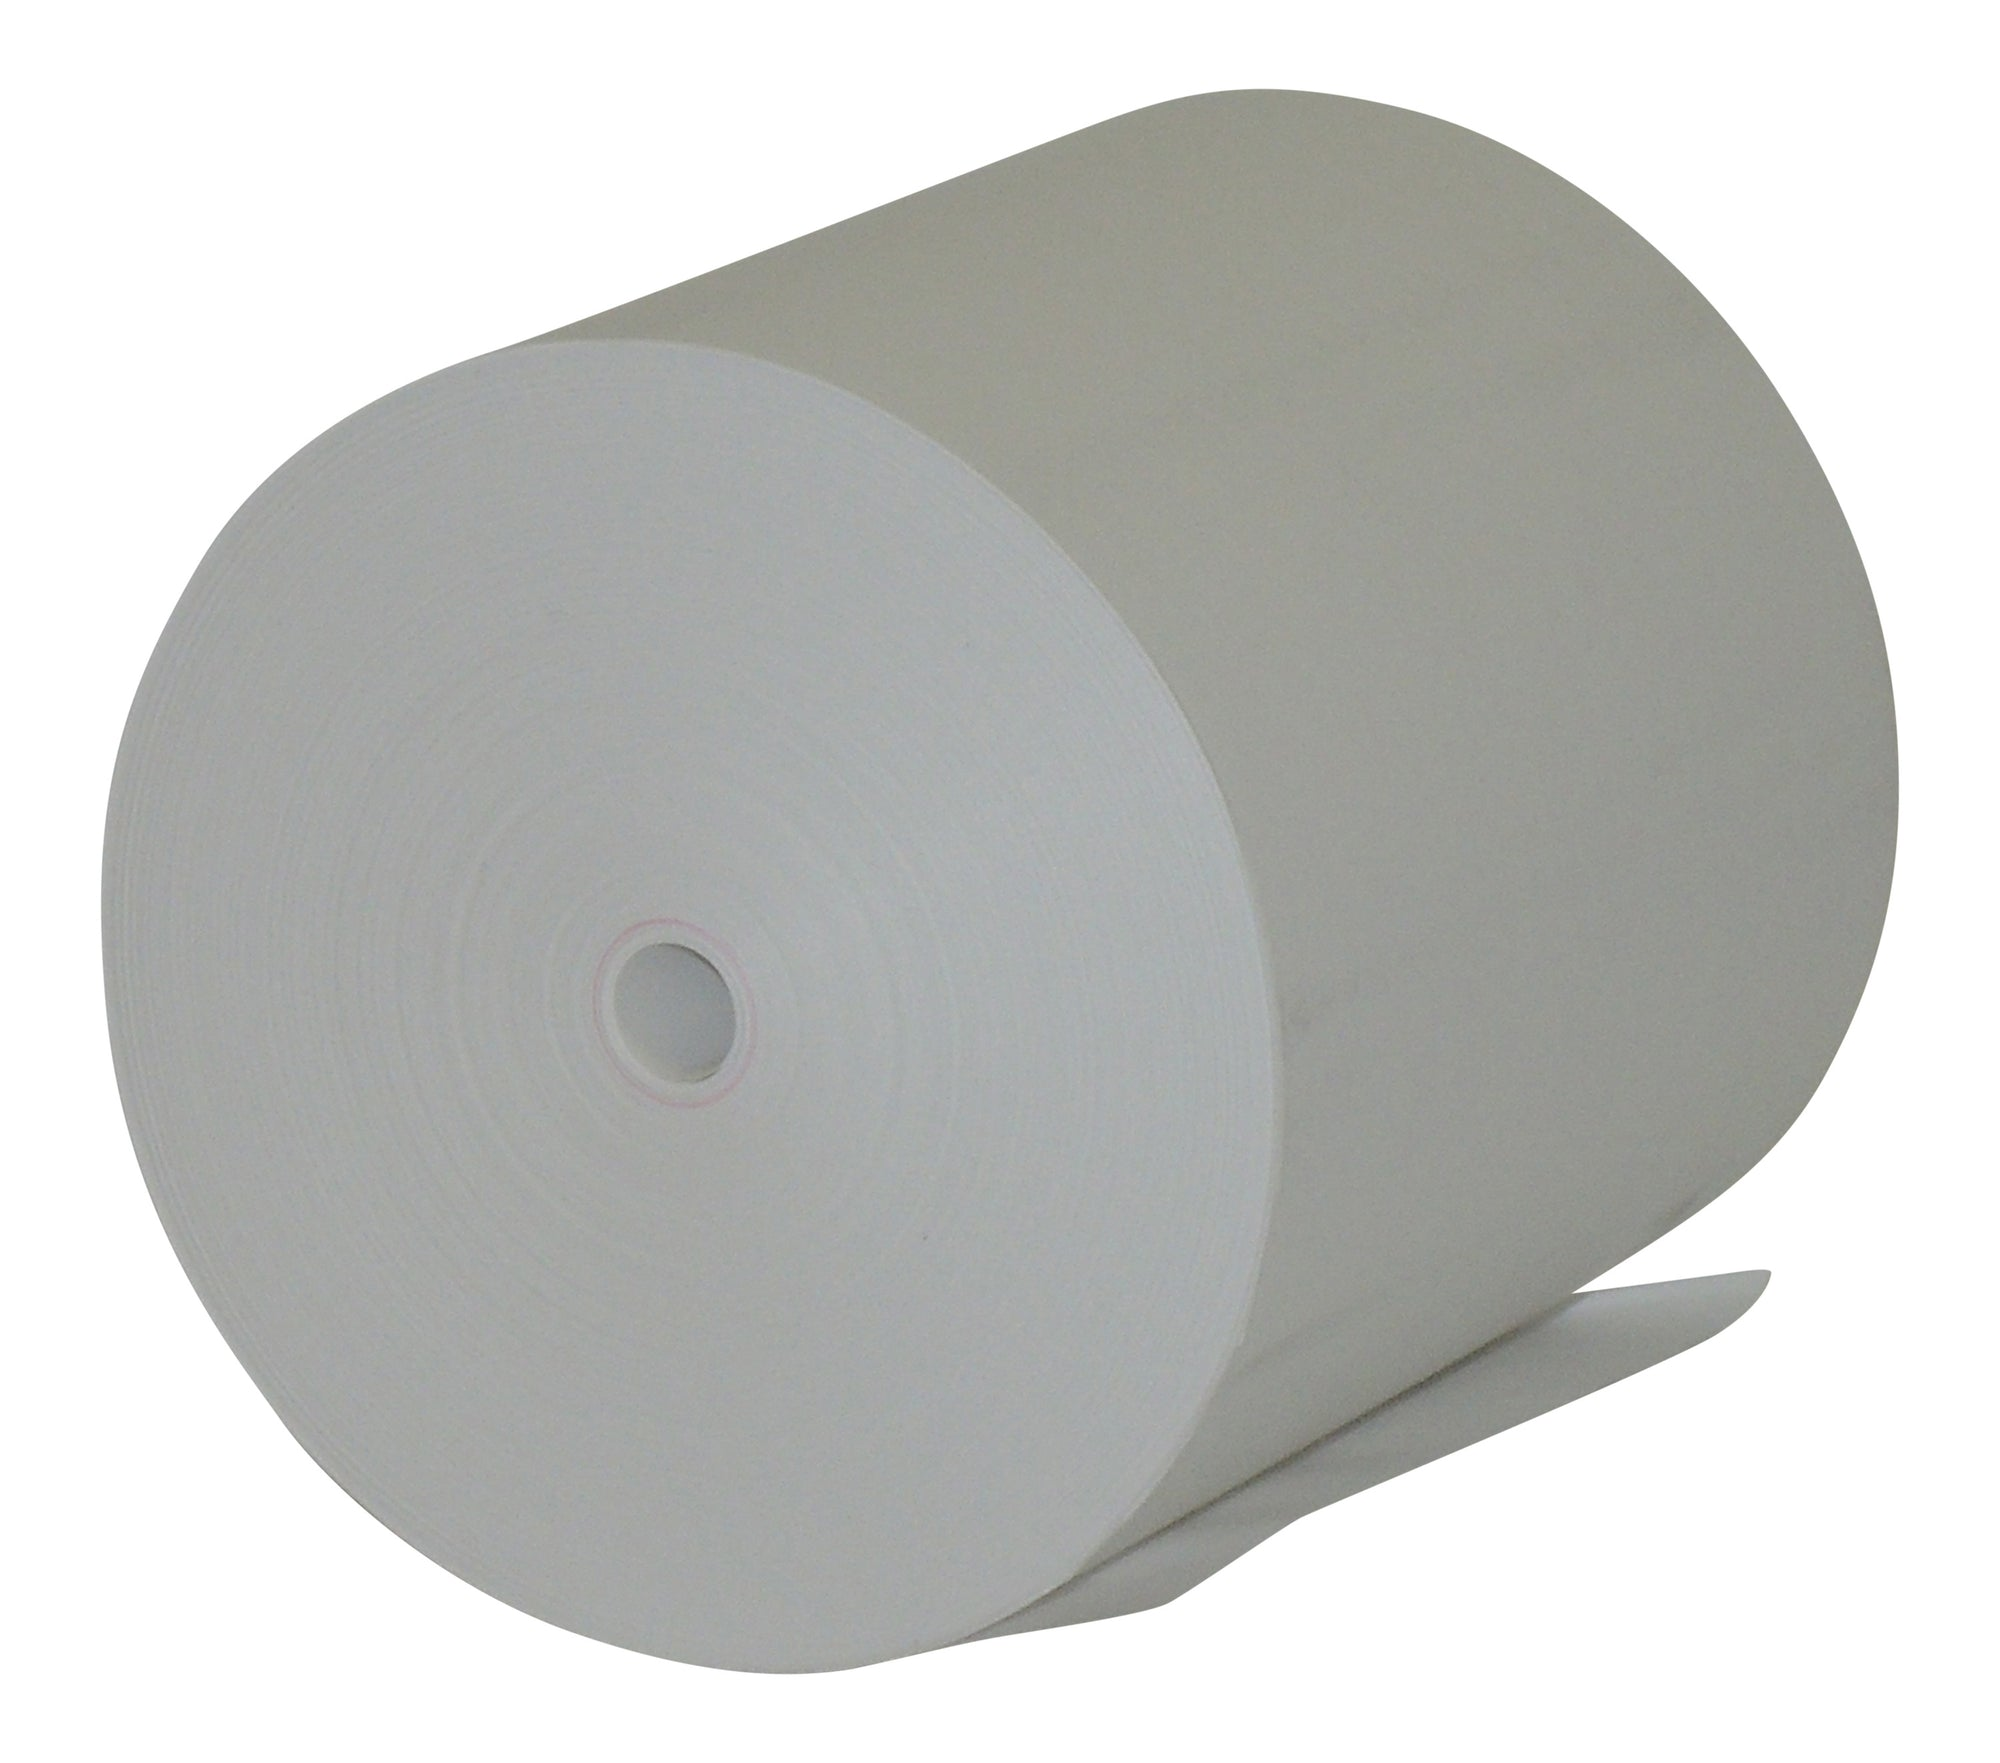 1 Ply Bond 3 x 225 ft CORELESS Bright White 32 rolls